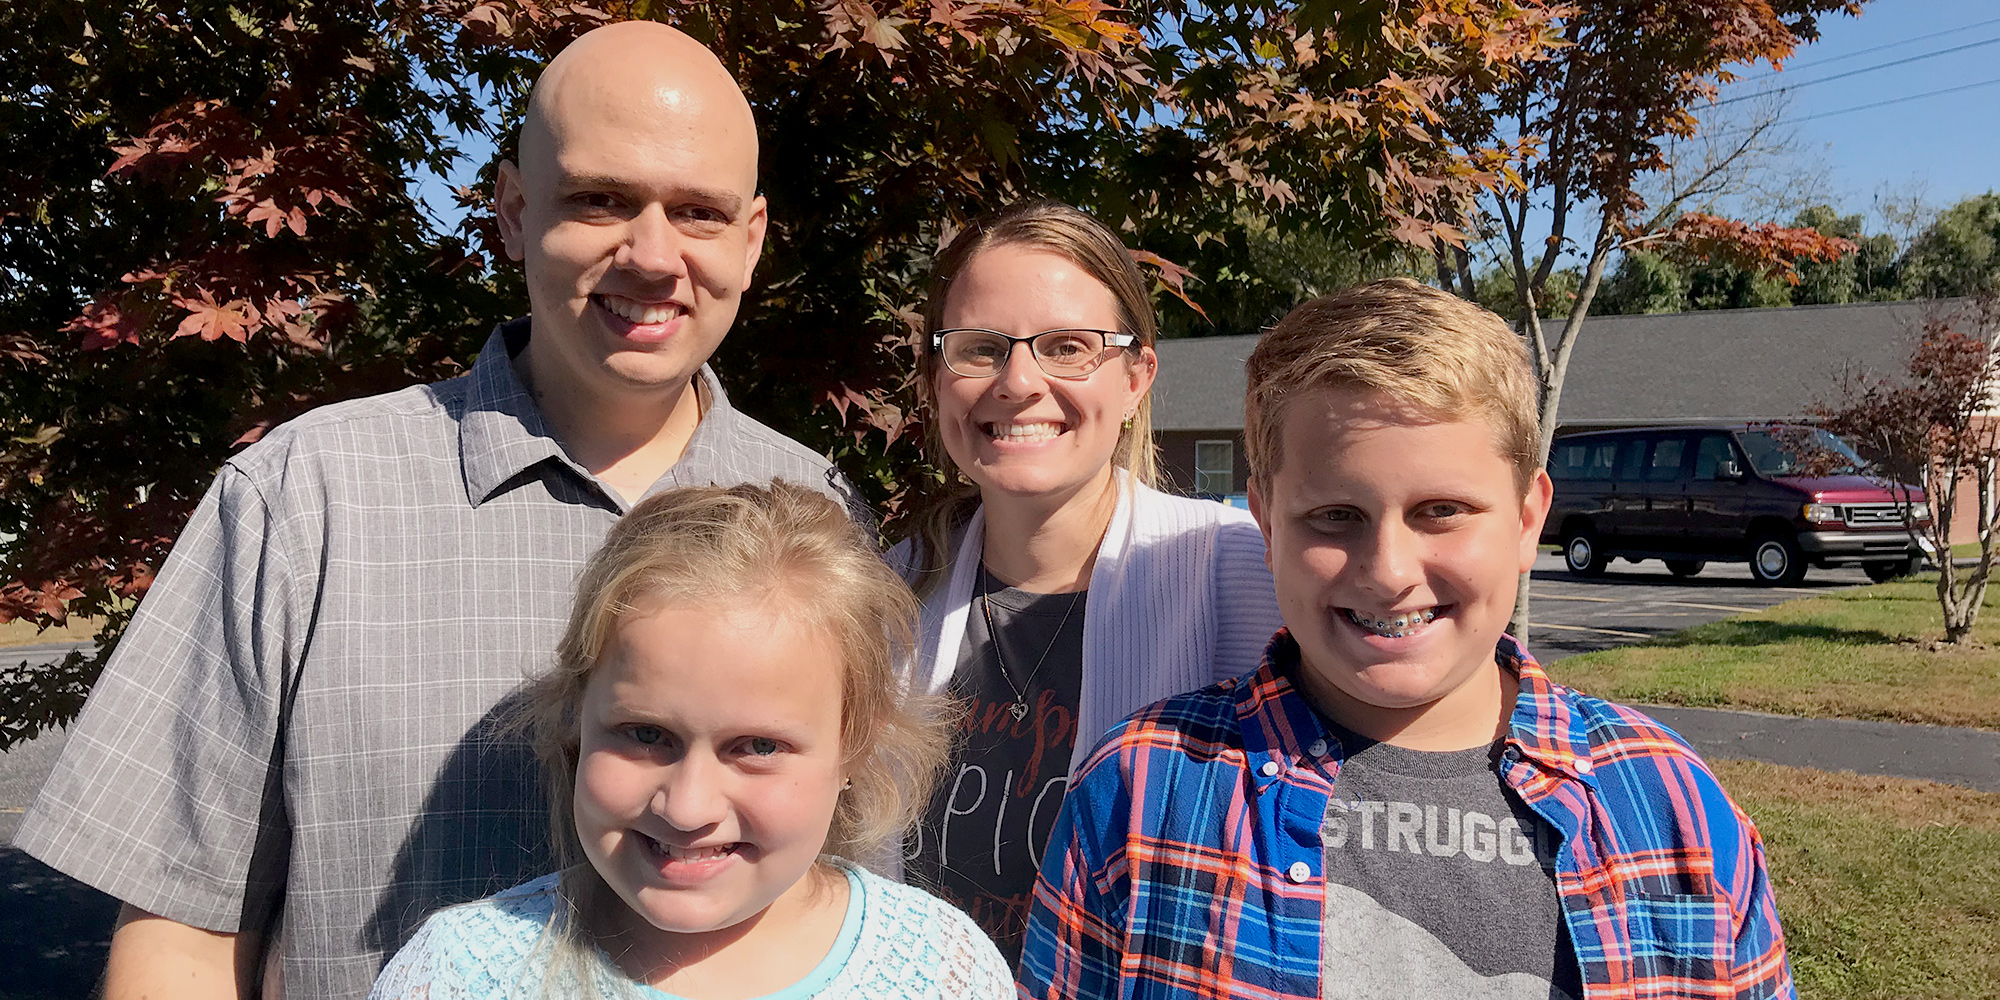 Lymphoma patient Jonathan chose proton therapy so he could have more time with his family